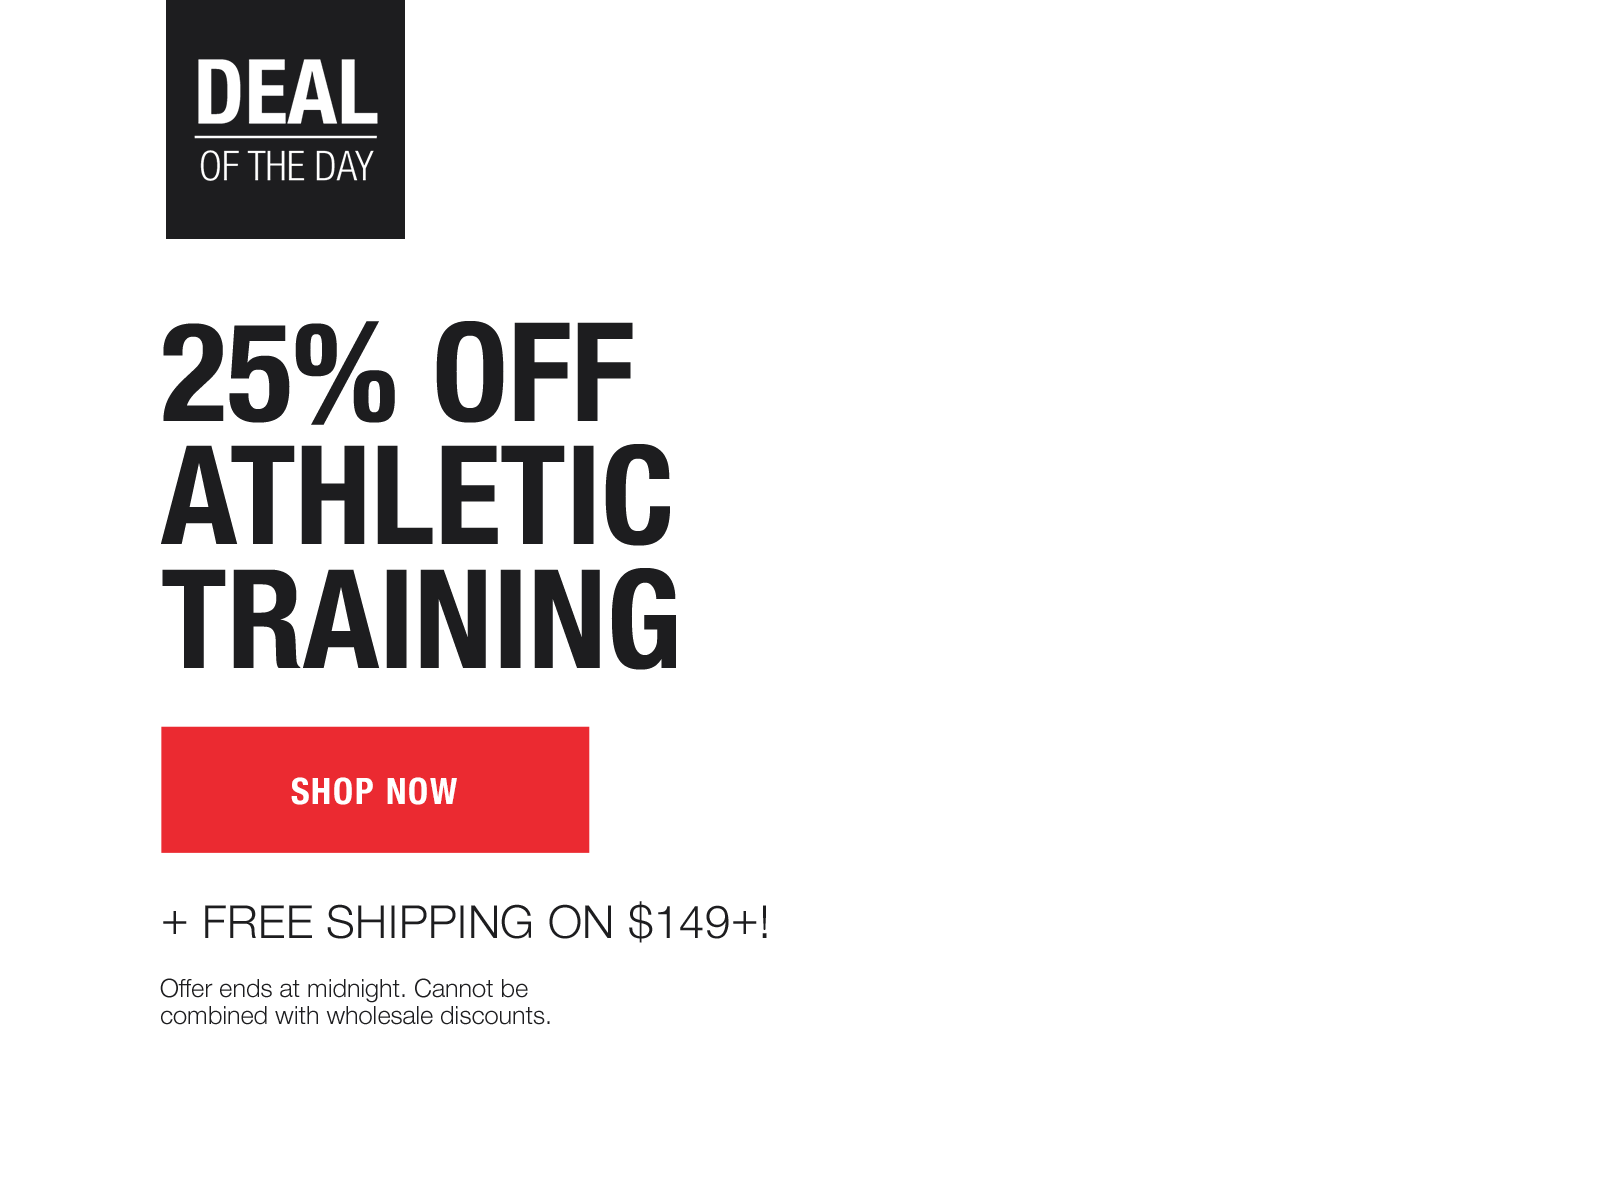 25% off athletic training, today only